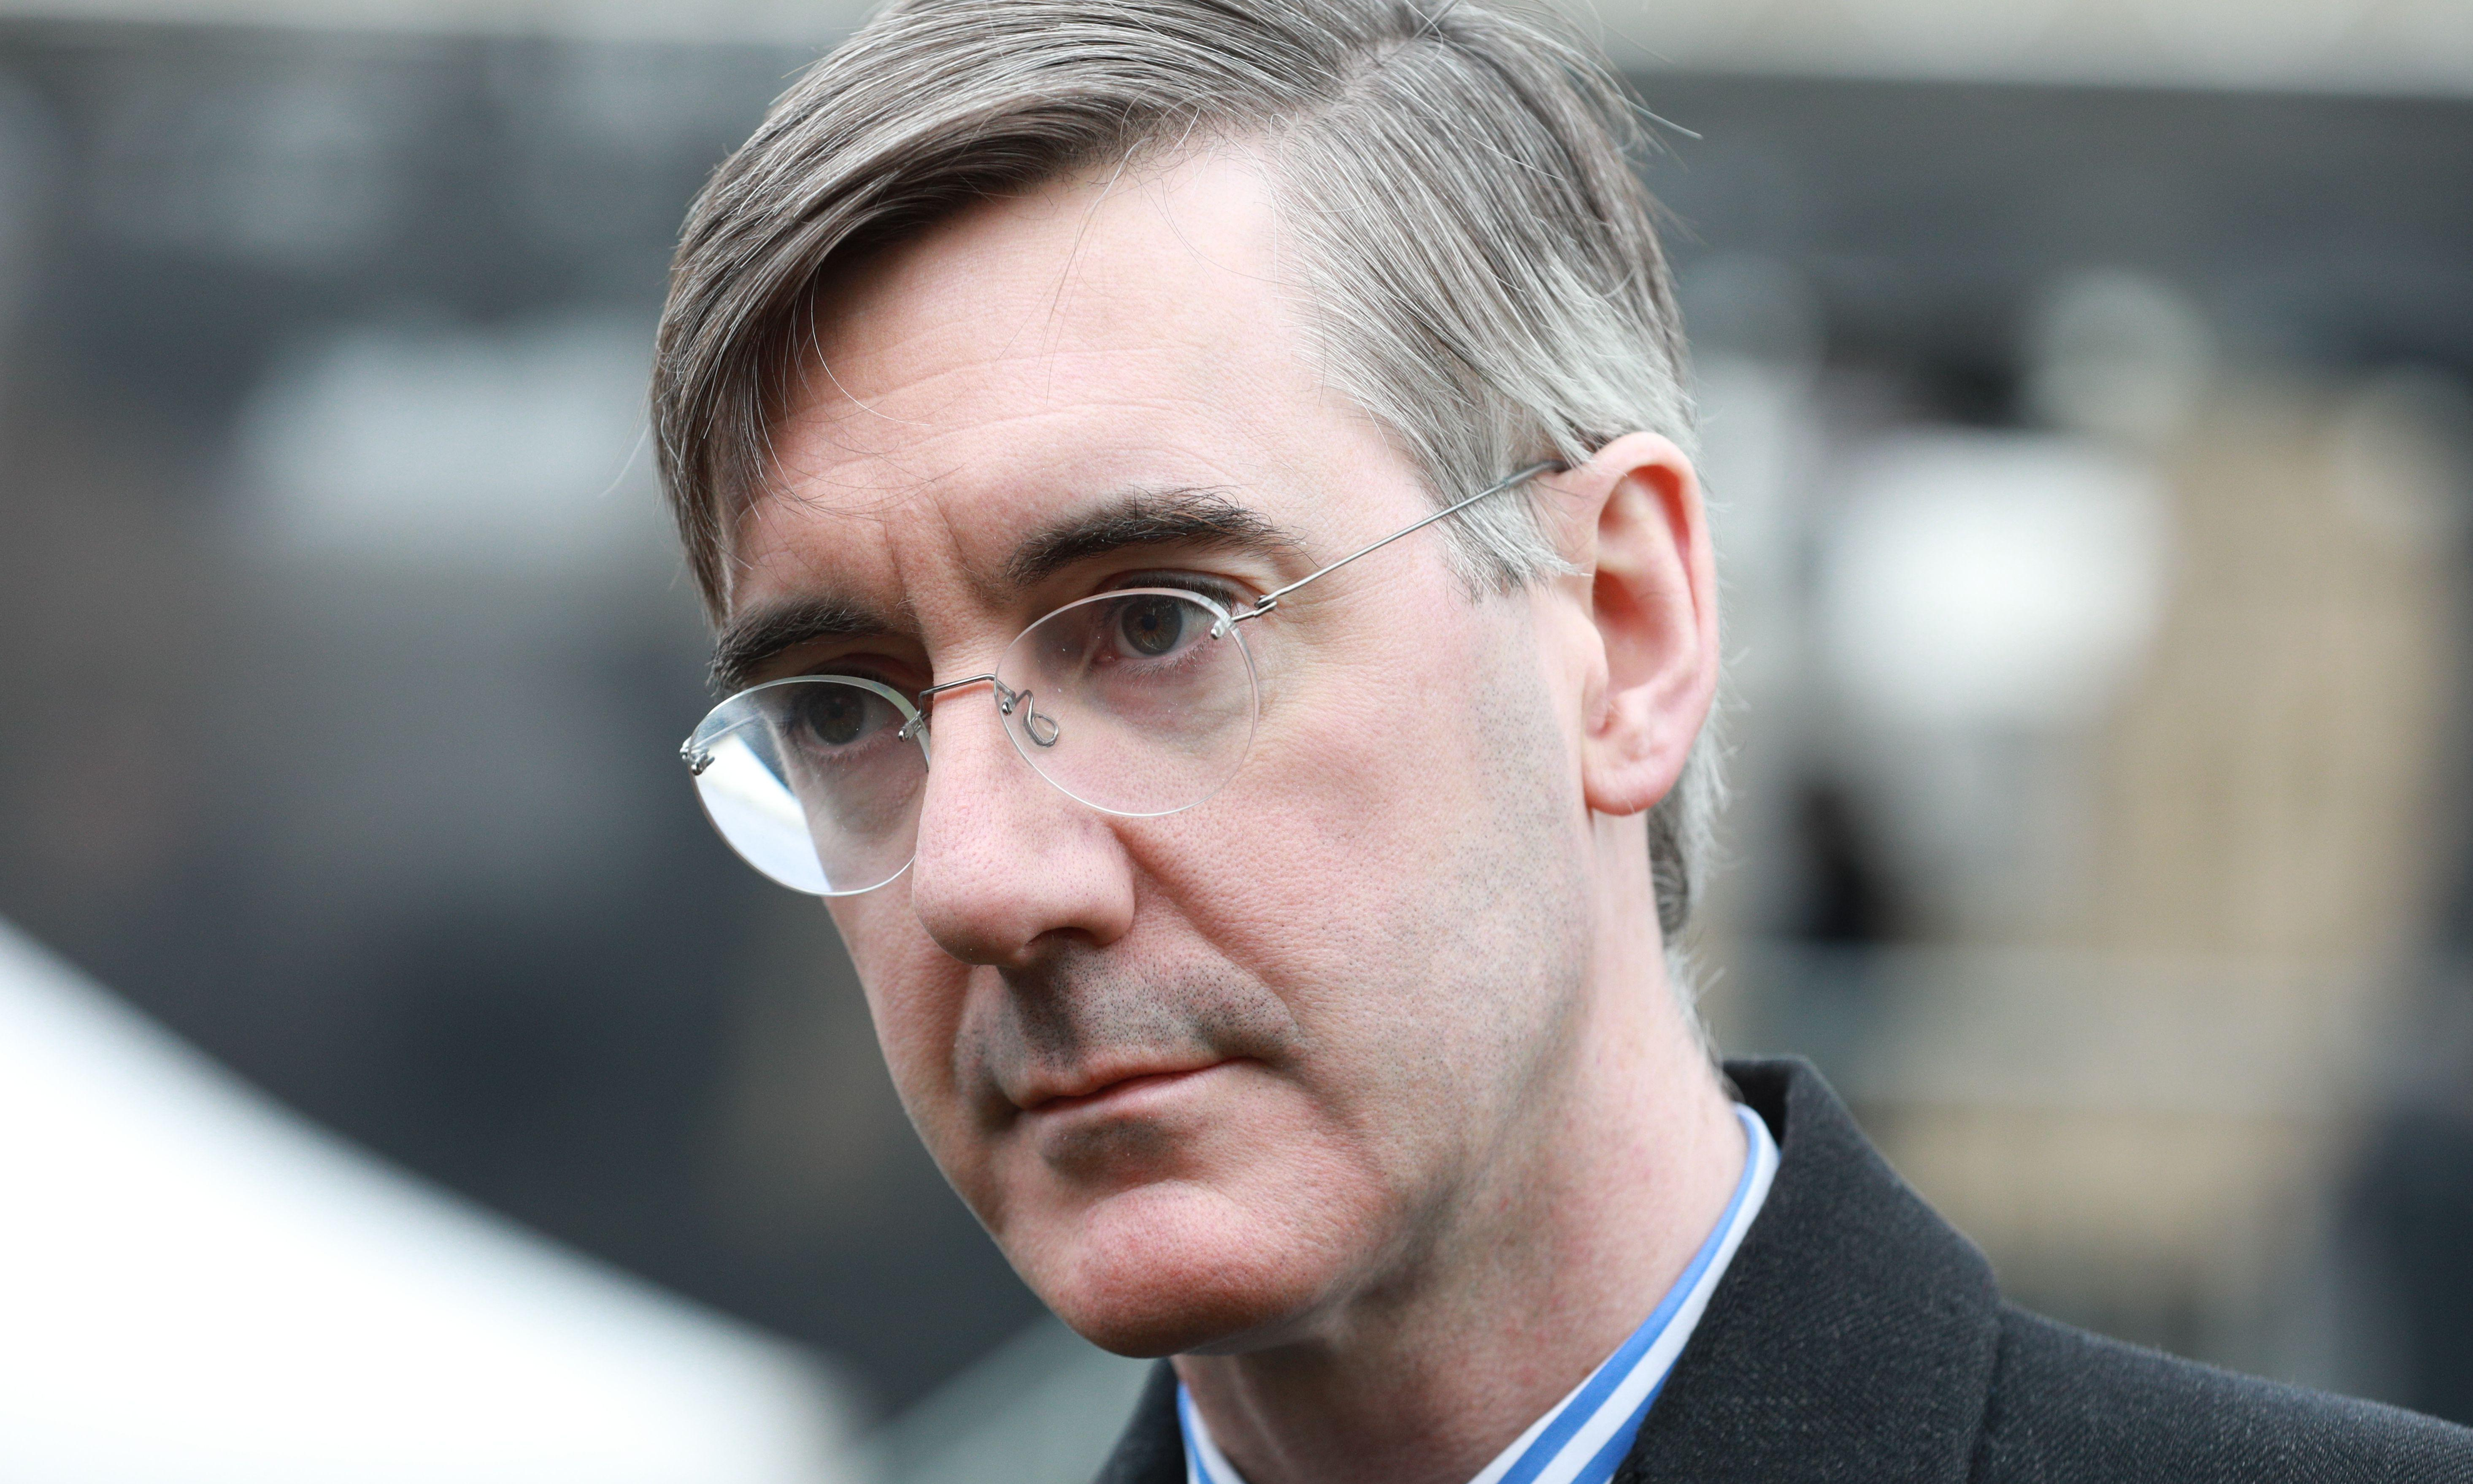 Jacob Rees-Mogg's Victorians has sold 734 copies – will publishers take note?